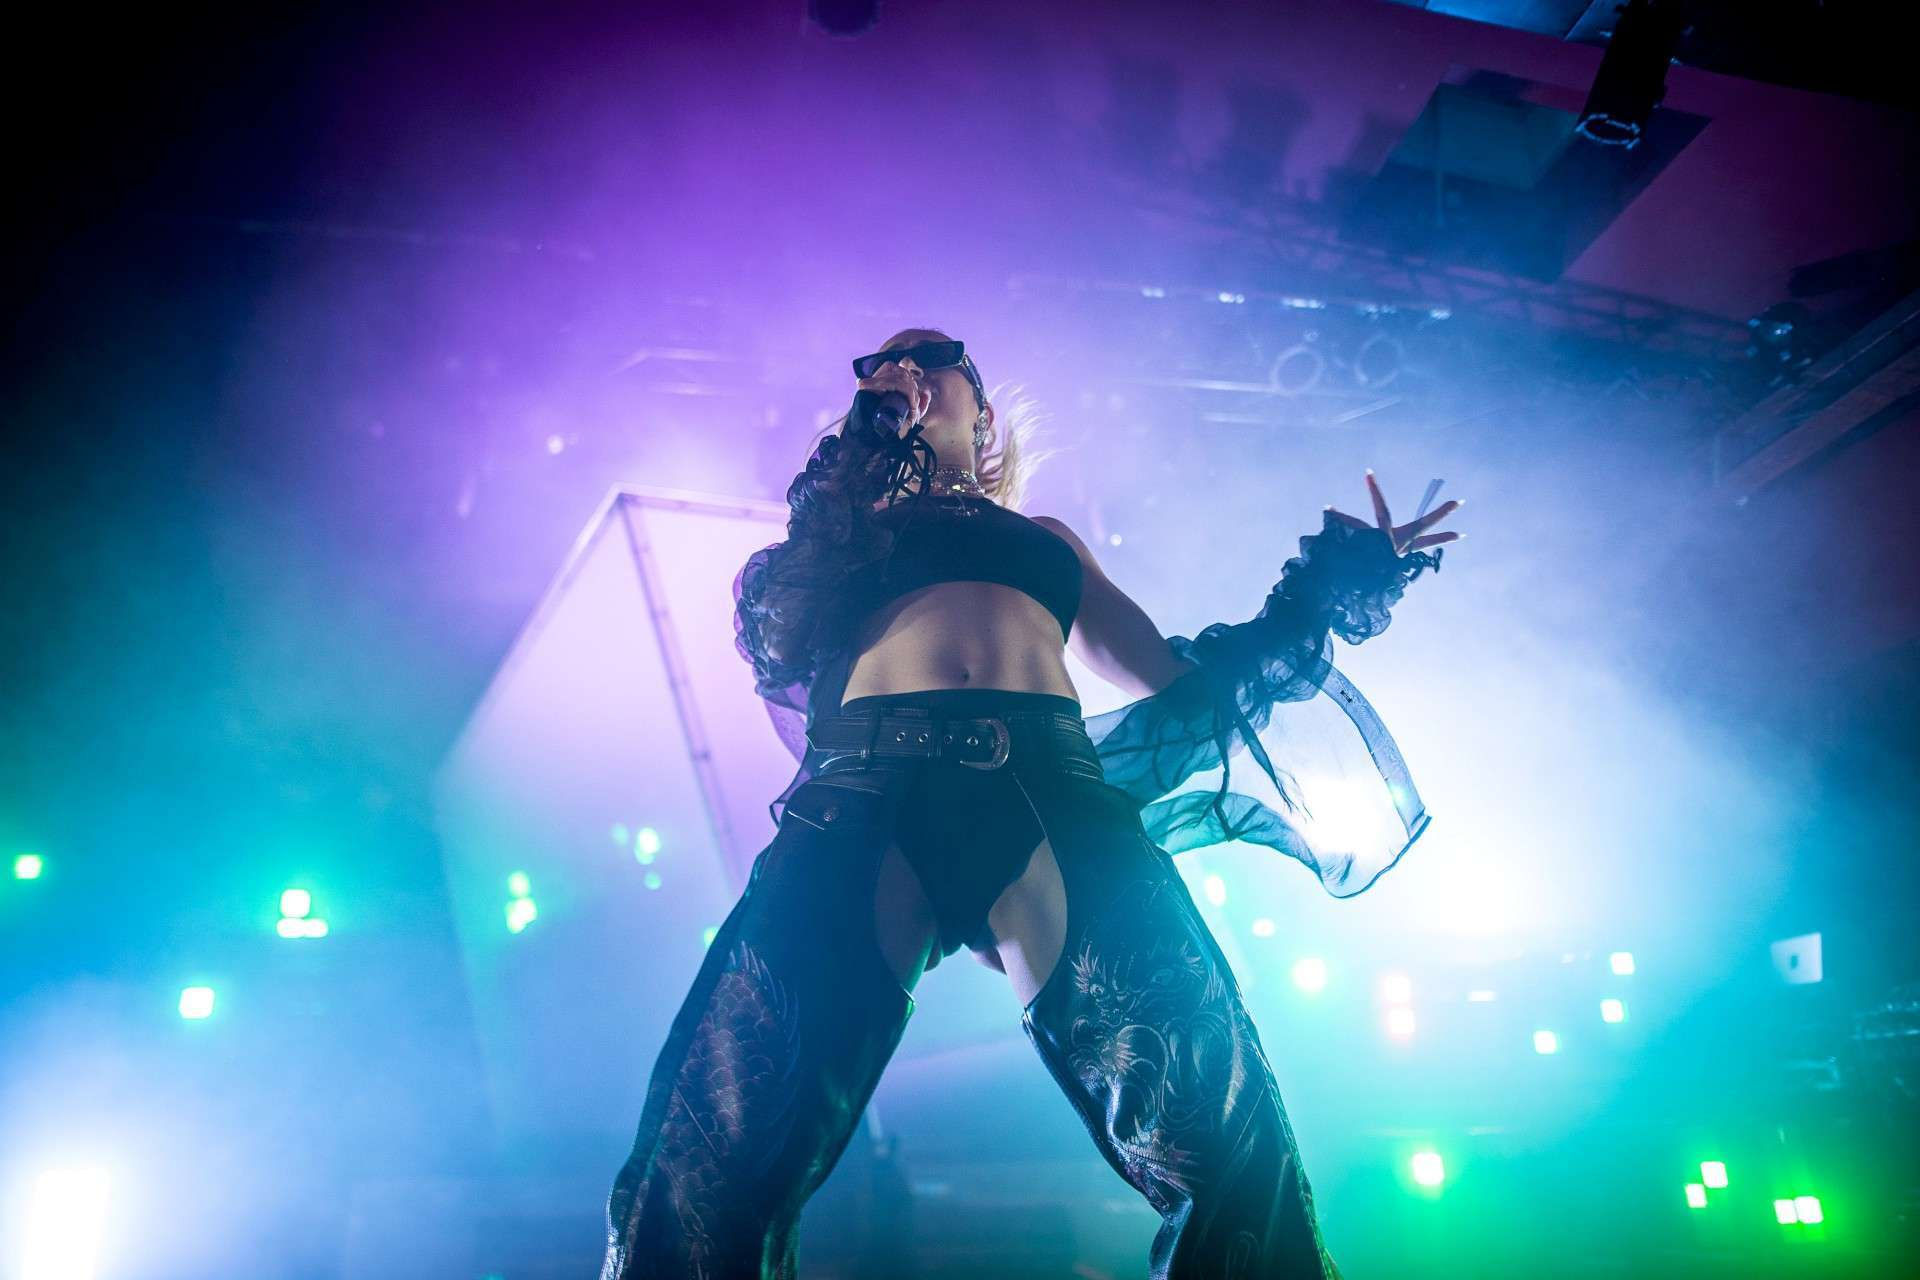 Charli XCX Performing Live in Concert at Astra in Berlin